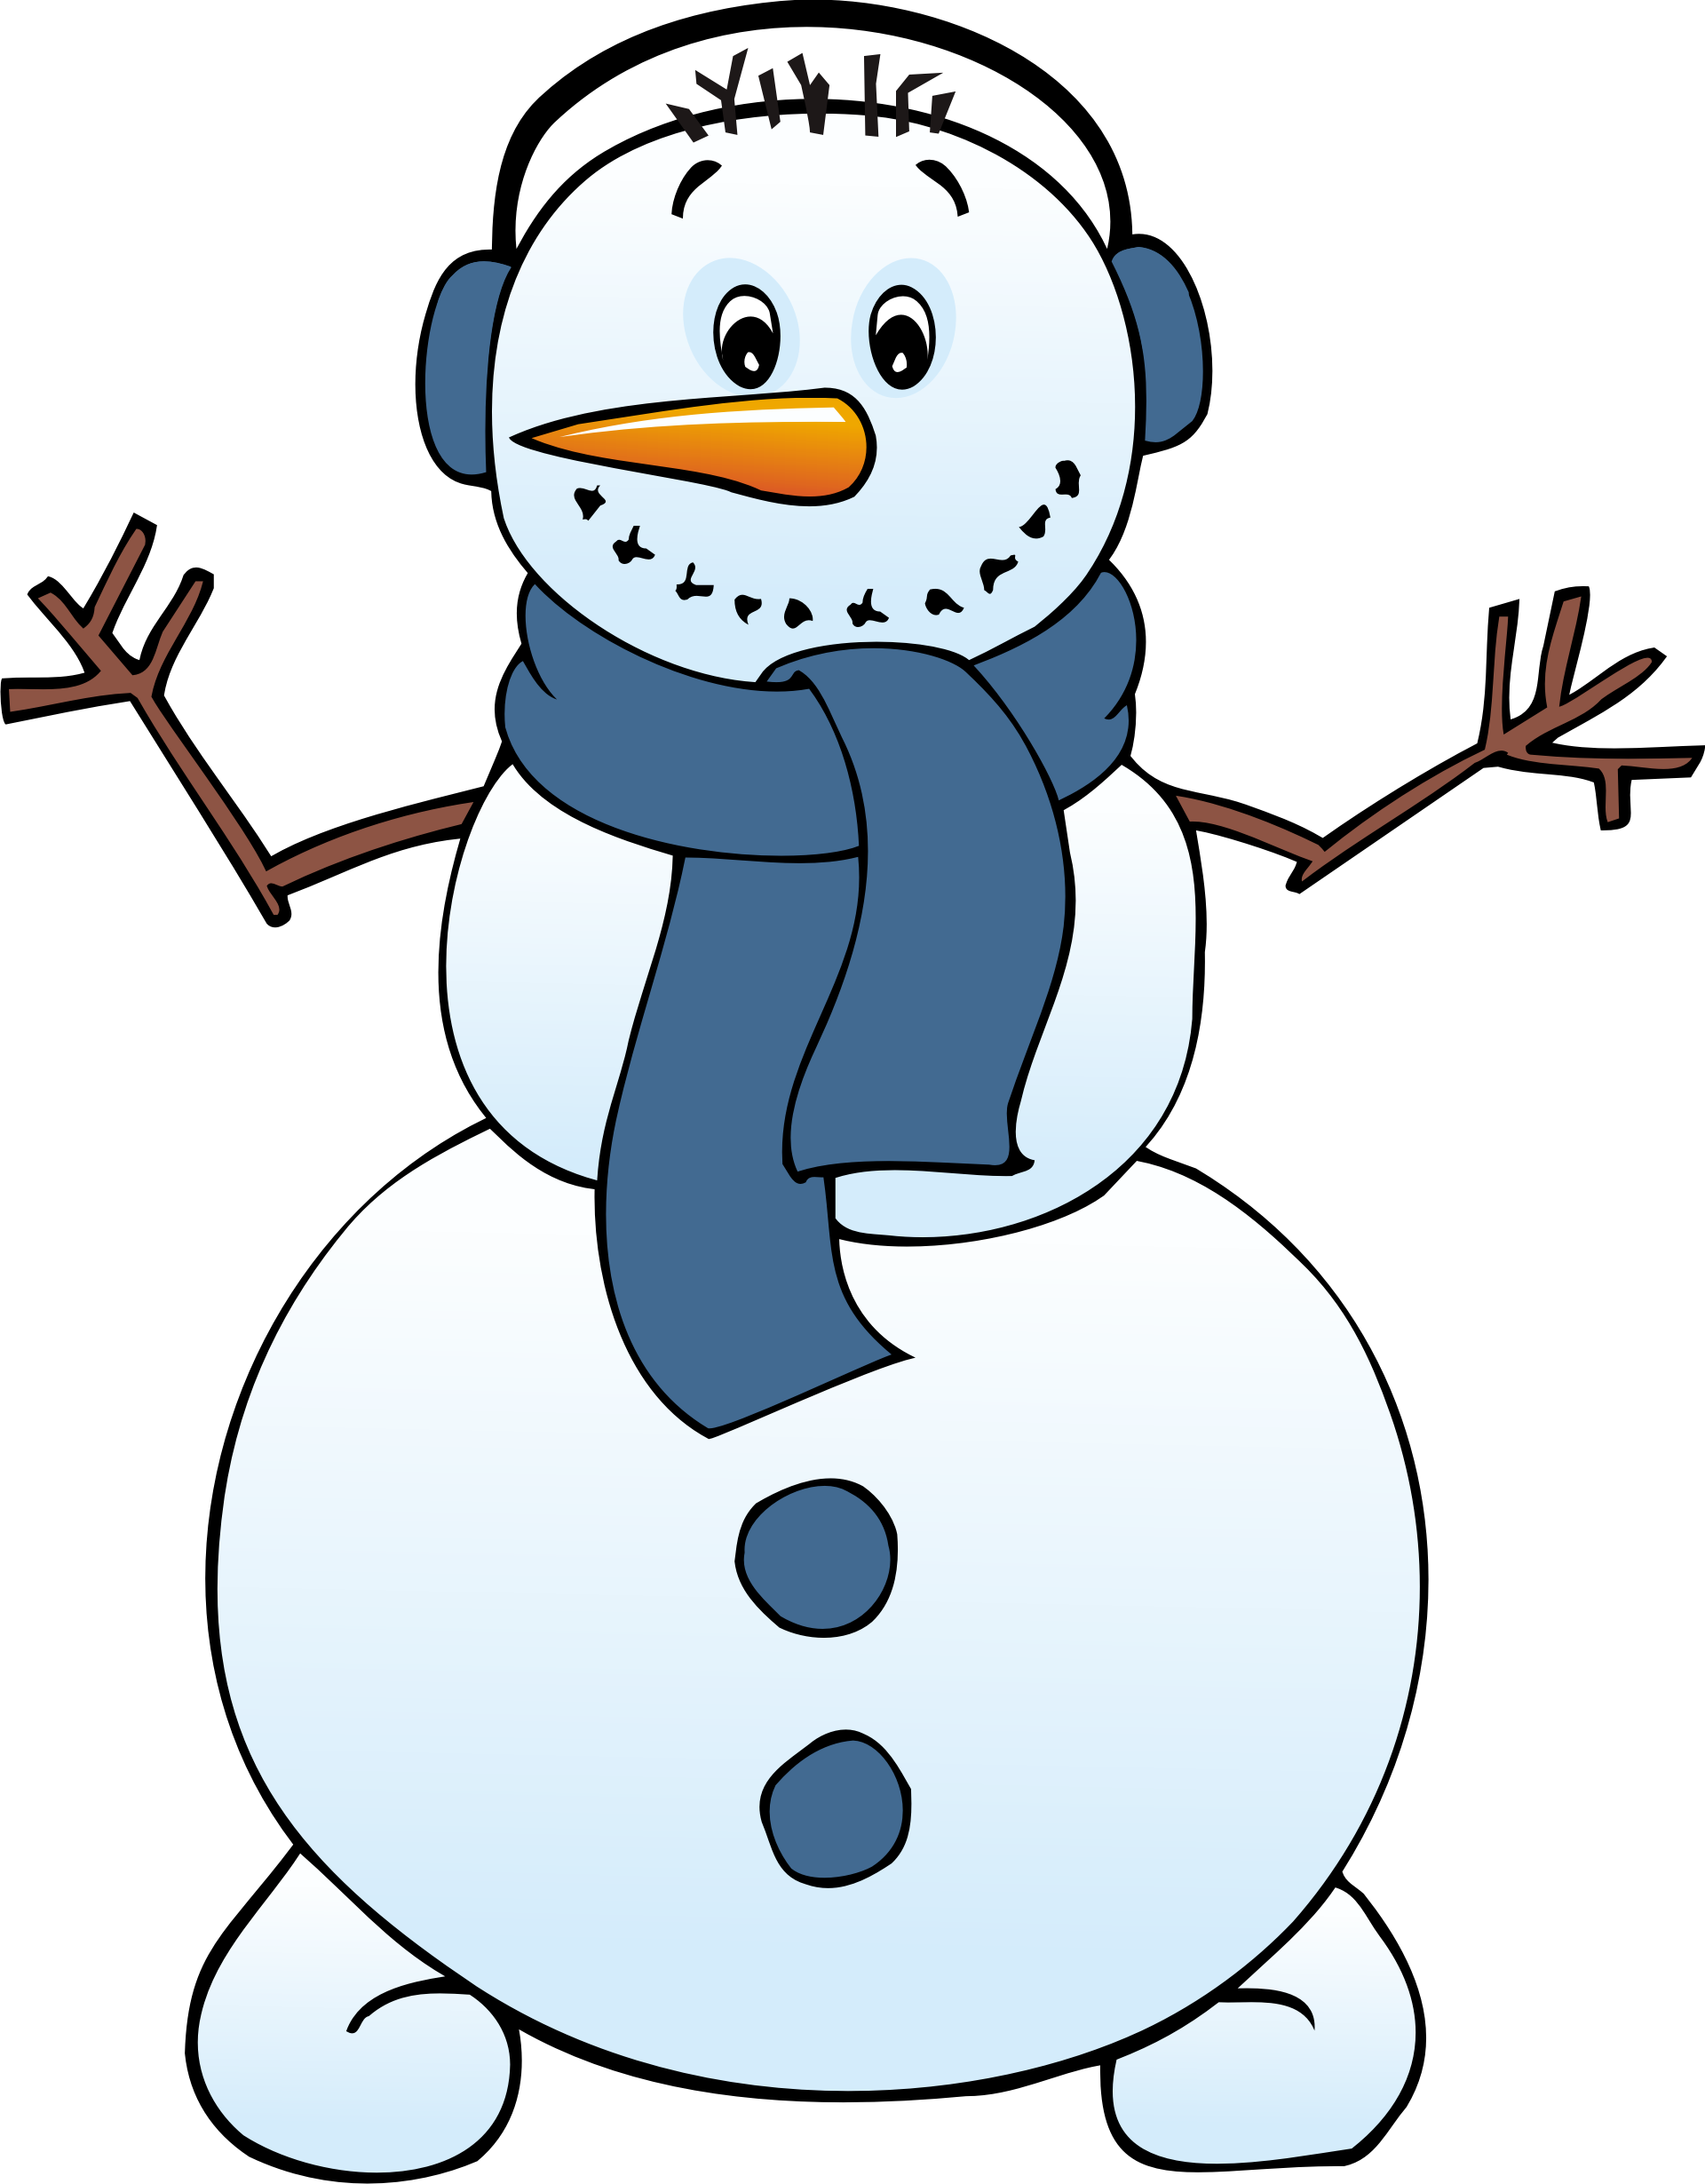 Free Snowman Clipart Borders | Clipart Panda - Free Clipart Images